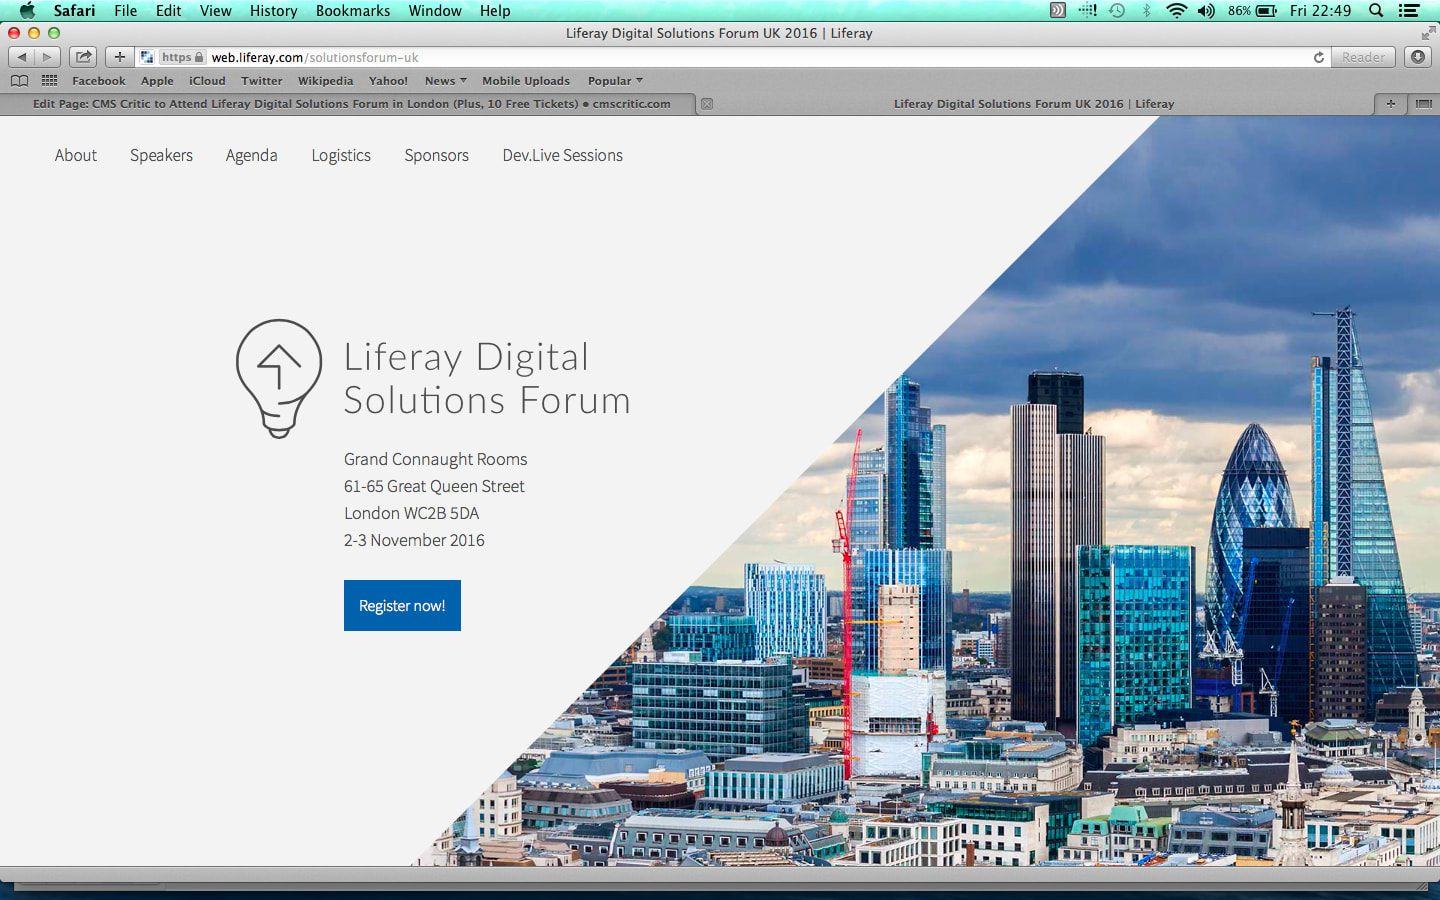 CMS Critic to Attend Liferay Digital Solutions Forum in London (Plus, 10 Free Tickets)